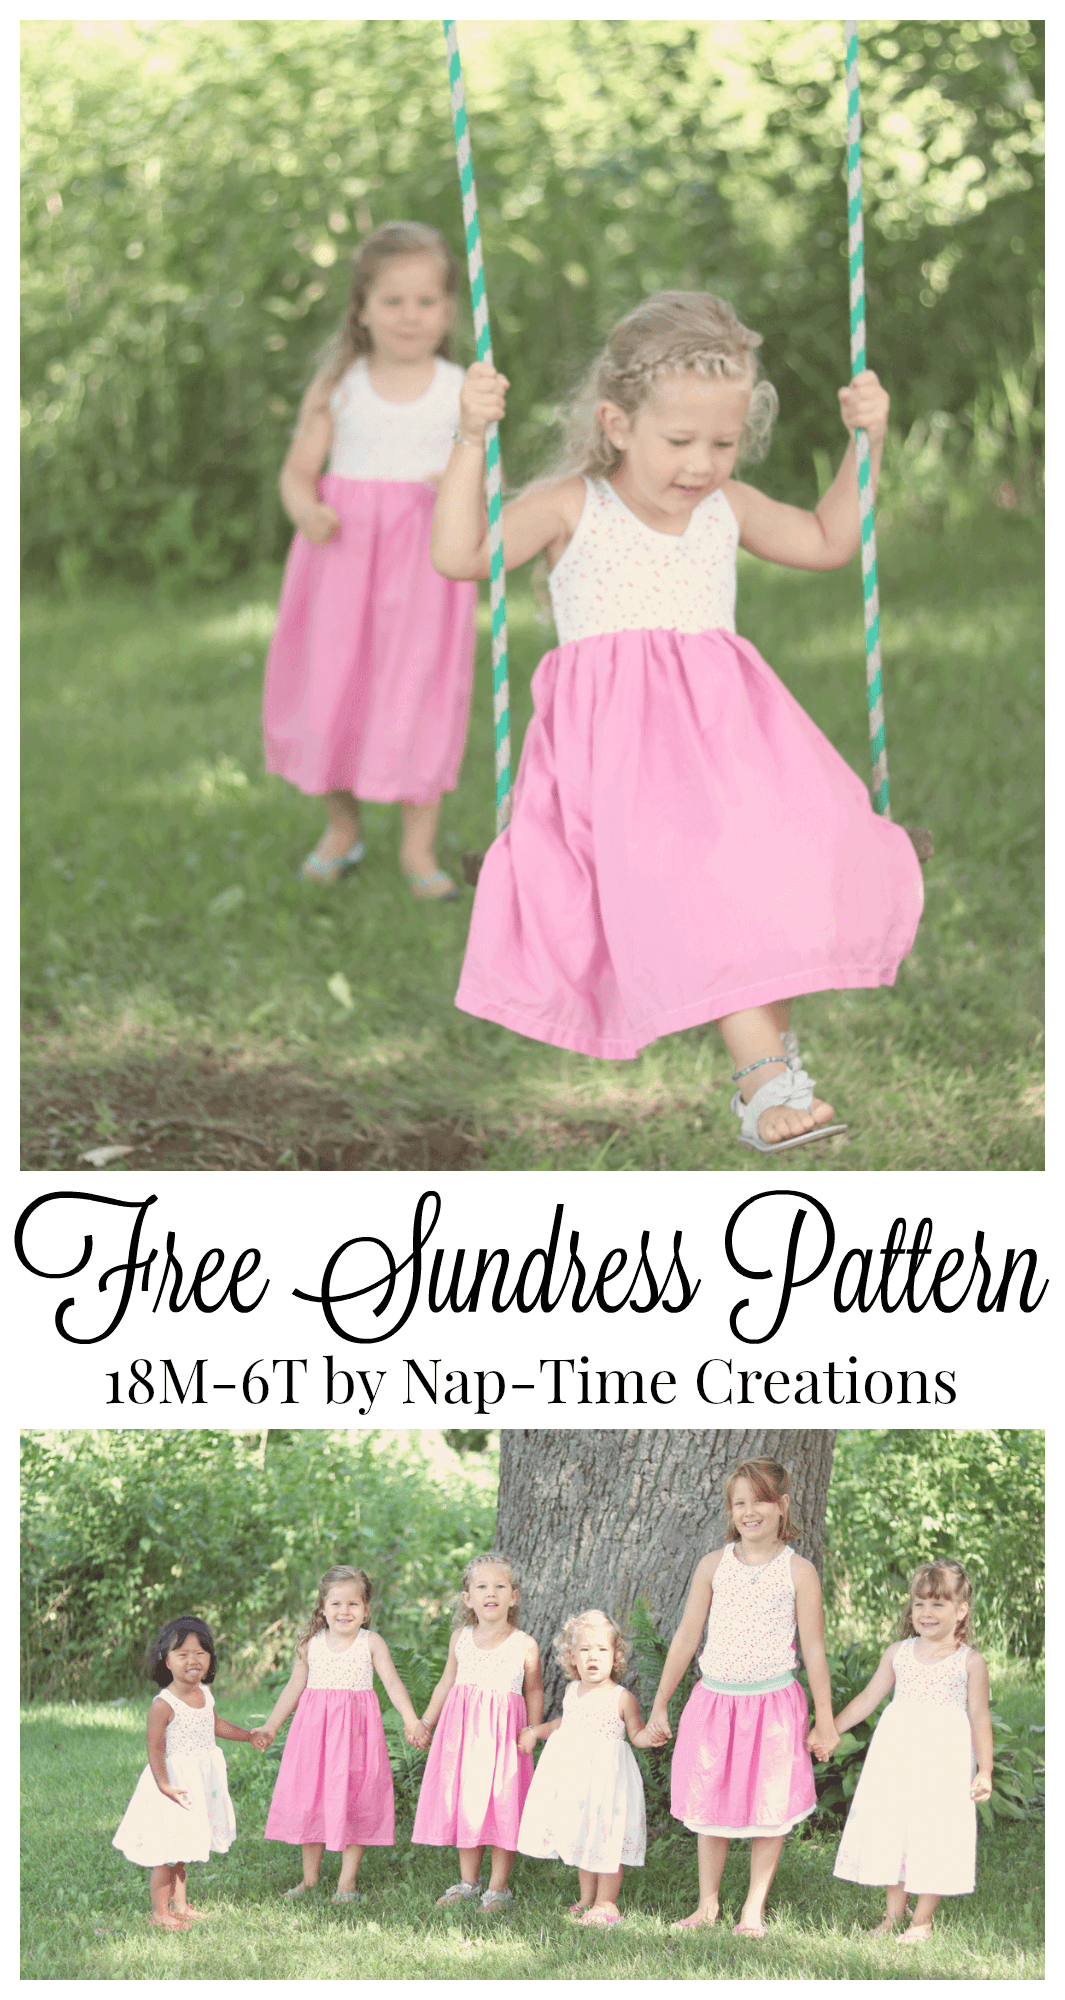 girls free sundress pattern 18M -6T from Nap-Time Creations | bebe ...